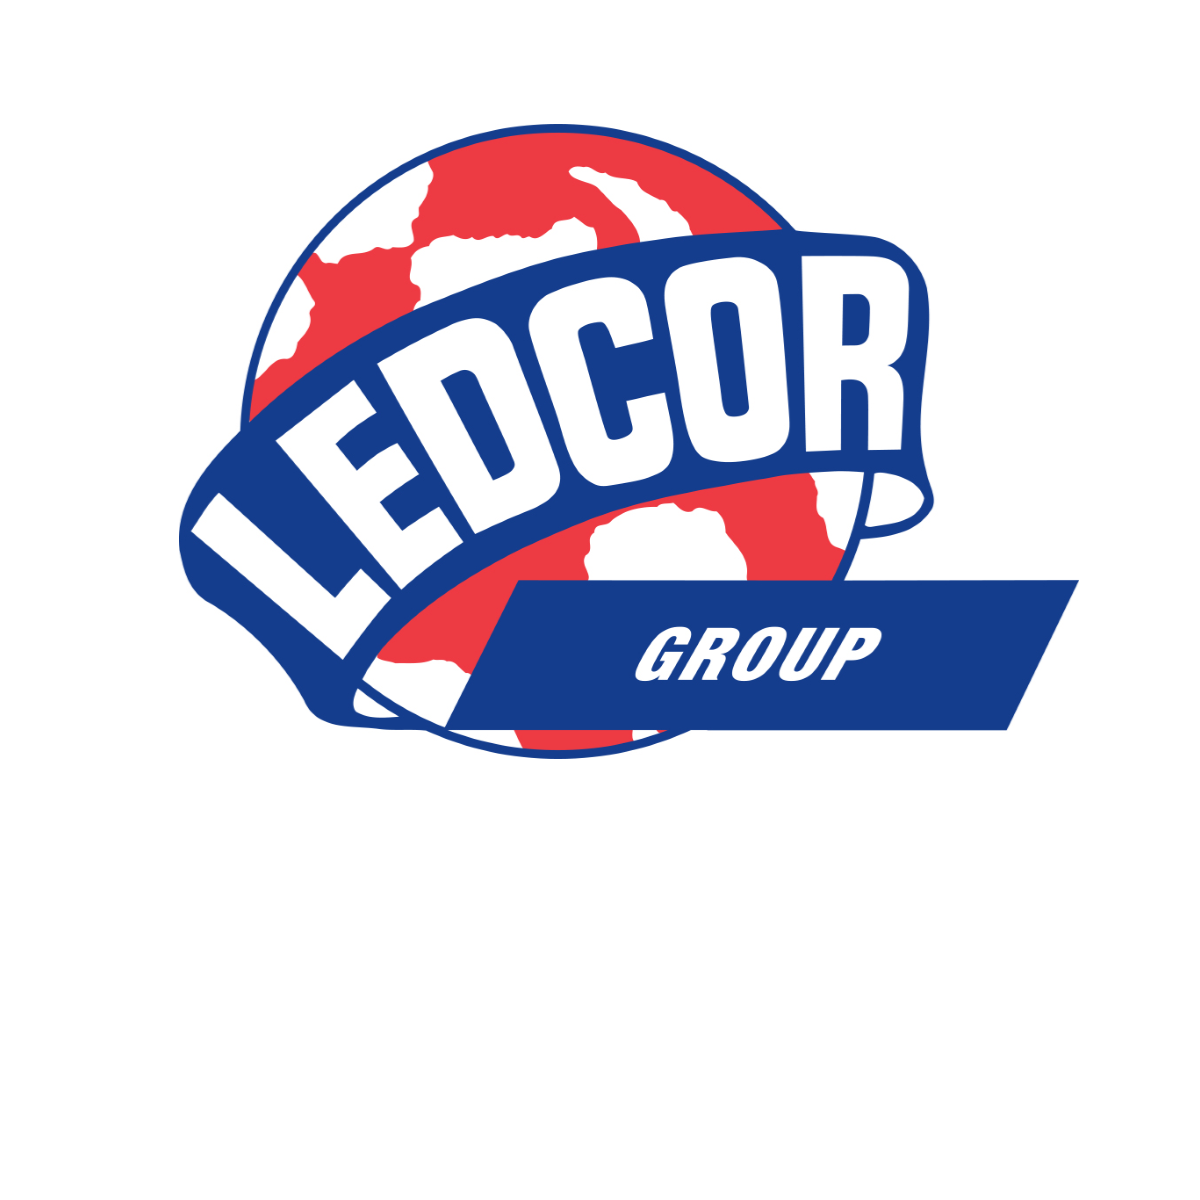 Ledcorp Group